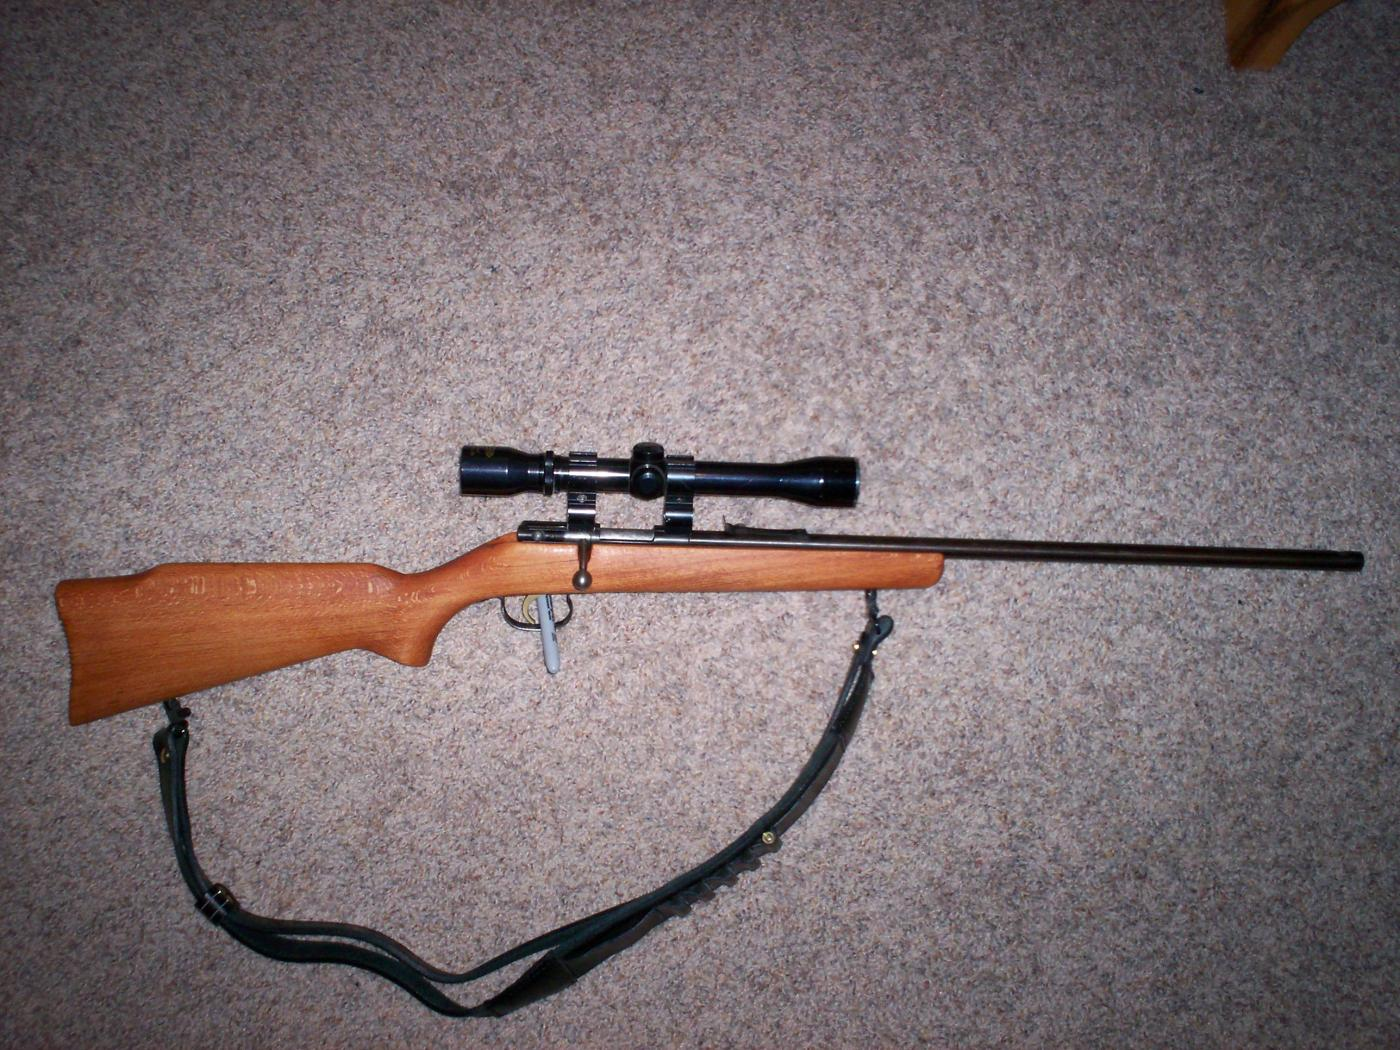 LUX 22 Hornet Rifle, single shot, can't find info | The